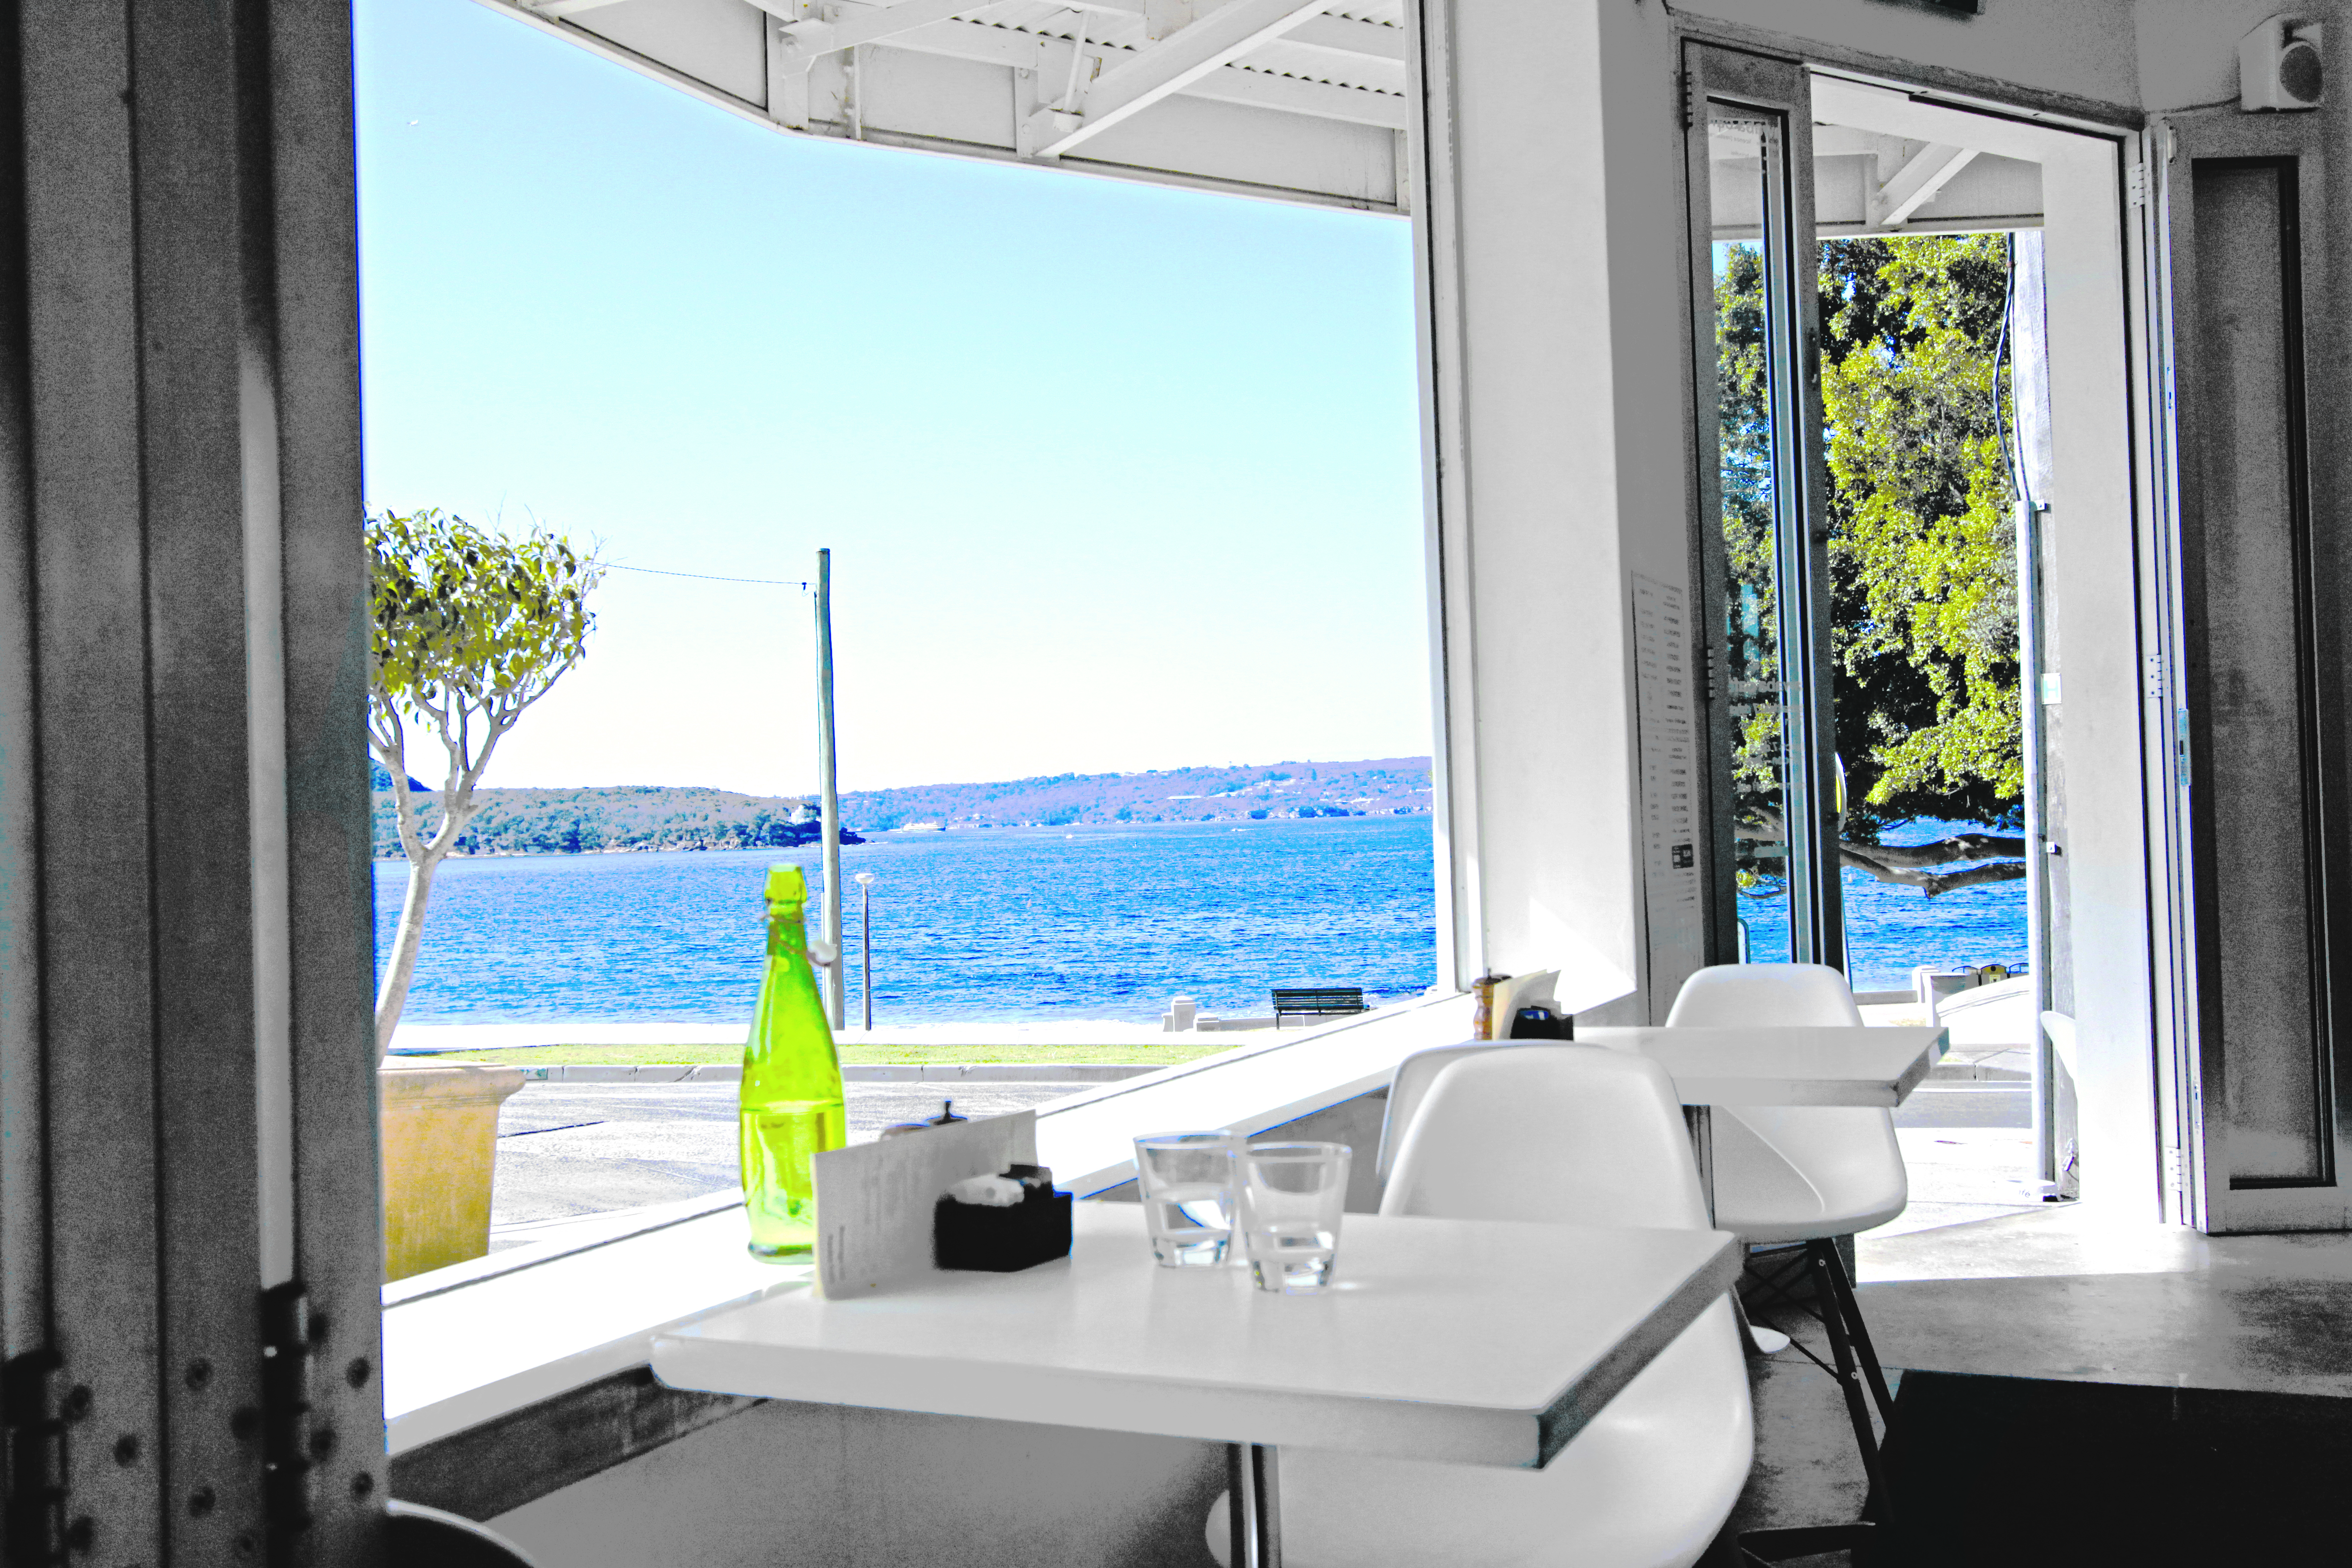 Beach-House-Balmoral-Restaurant-Cafe-Sydney-Scenery(2)-mode